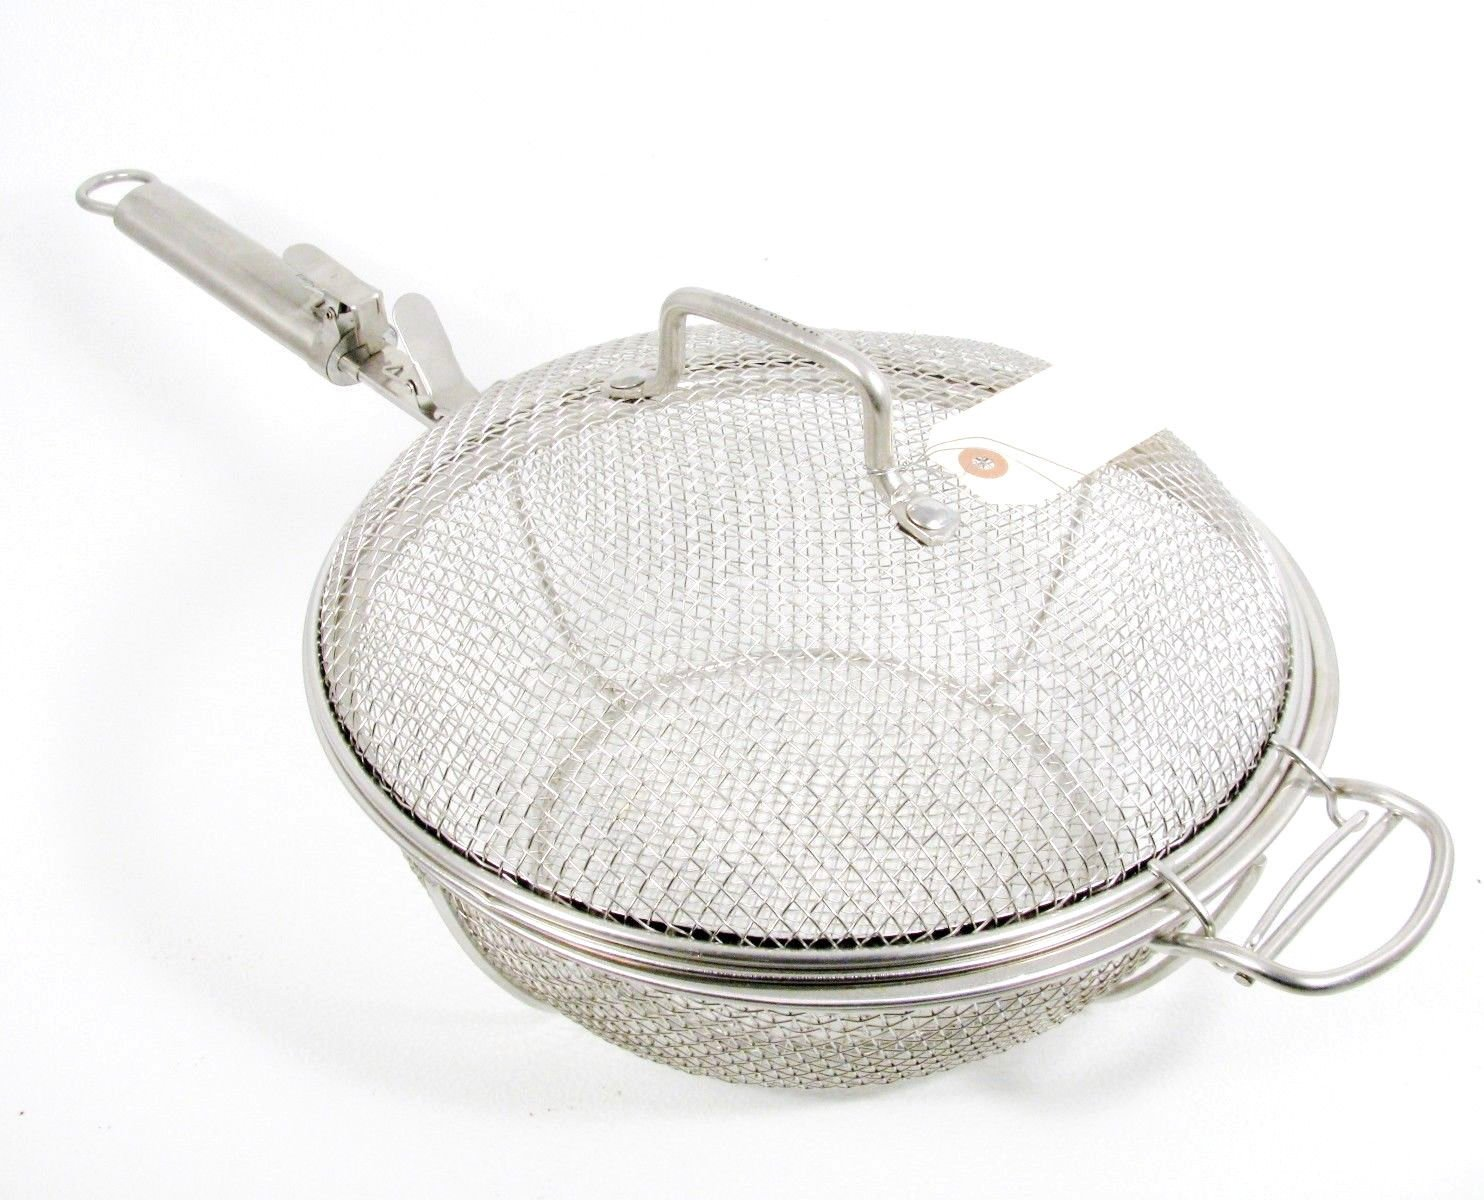 TECHNIQUE Round Shaker Deep Fryer Barbeque Basket Stainless Steel Removable Lid Fast Free Ship